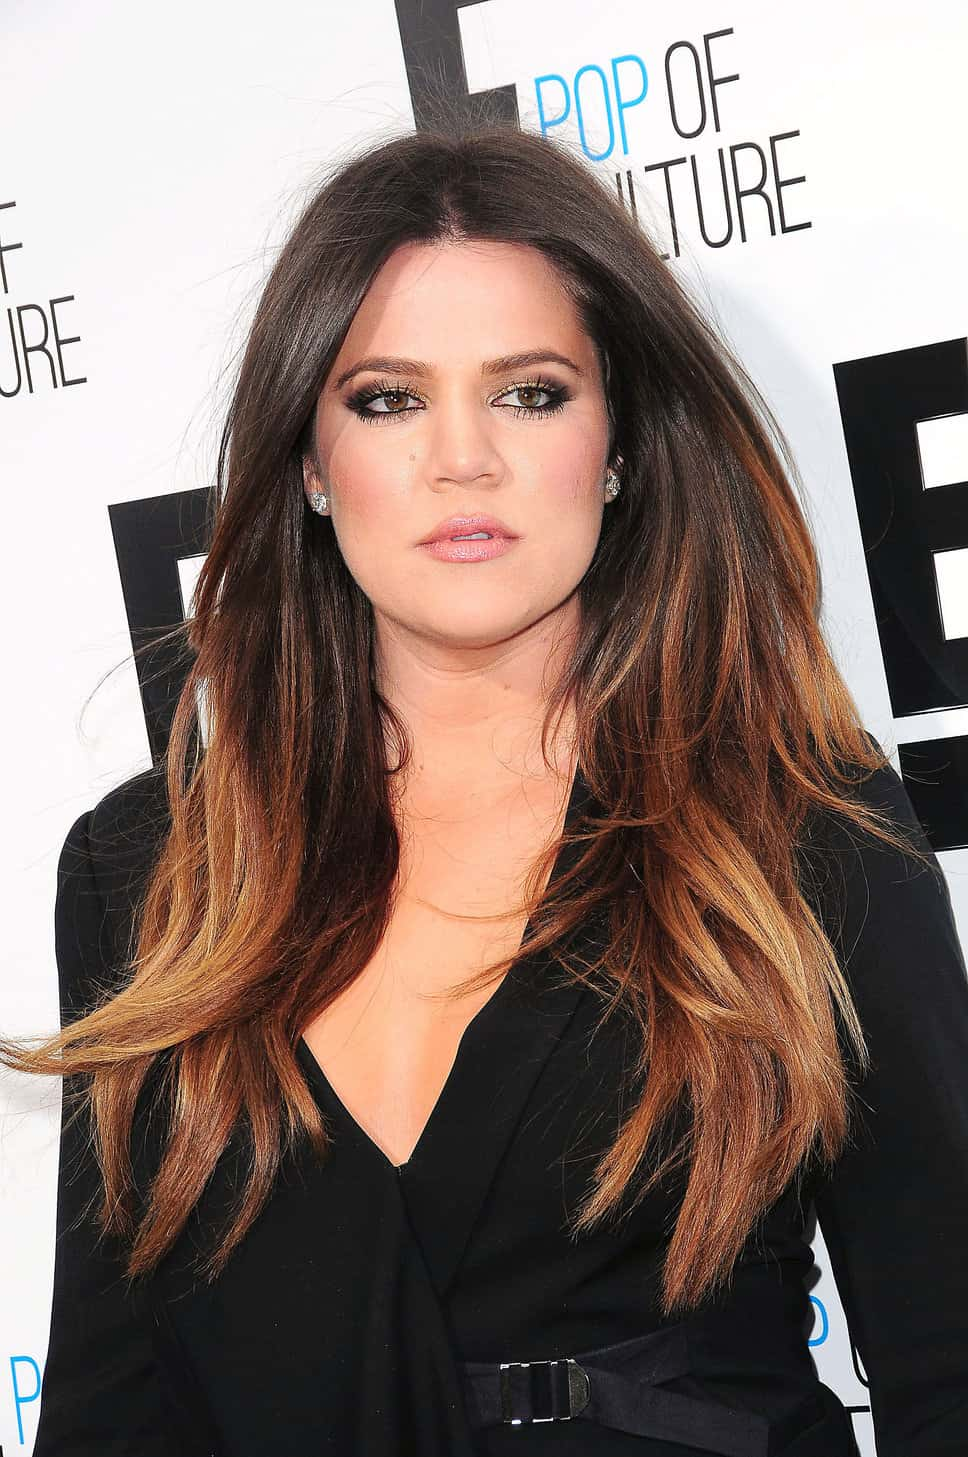 khloe kardashian dip dyed hair What Are The Biggest Hair Trends For 2013? Get Some Color Inspiration...